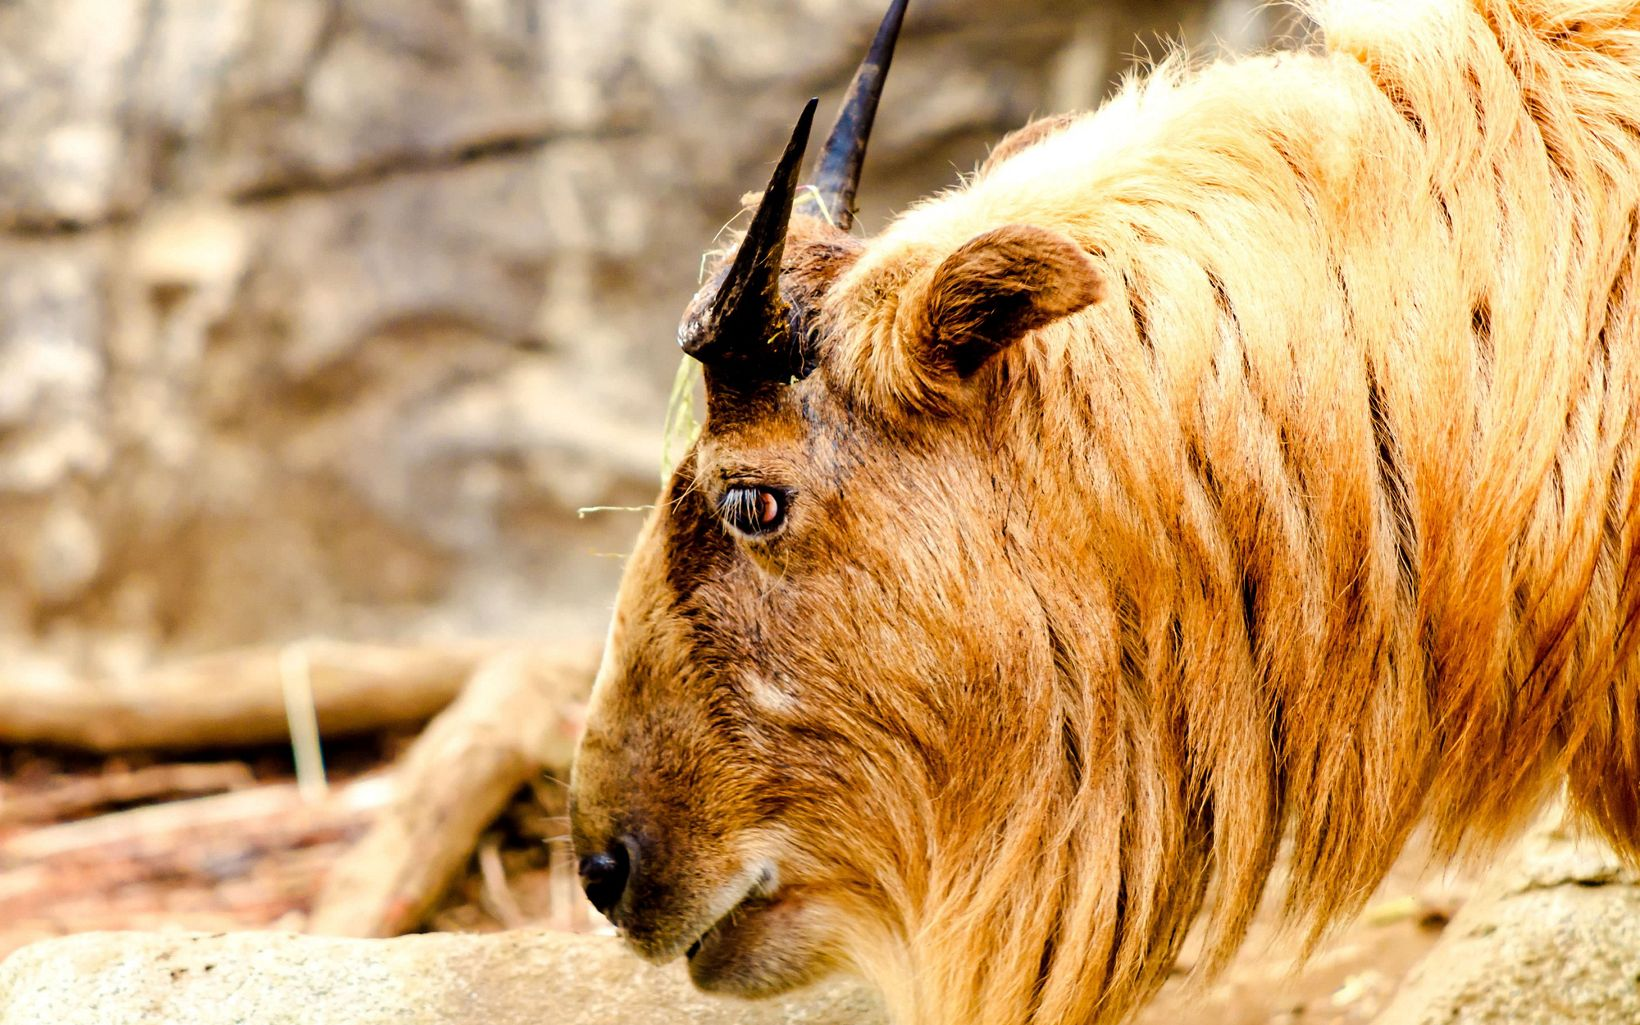 closeup of the side of a takin's head